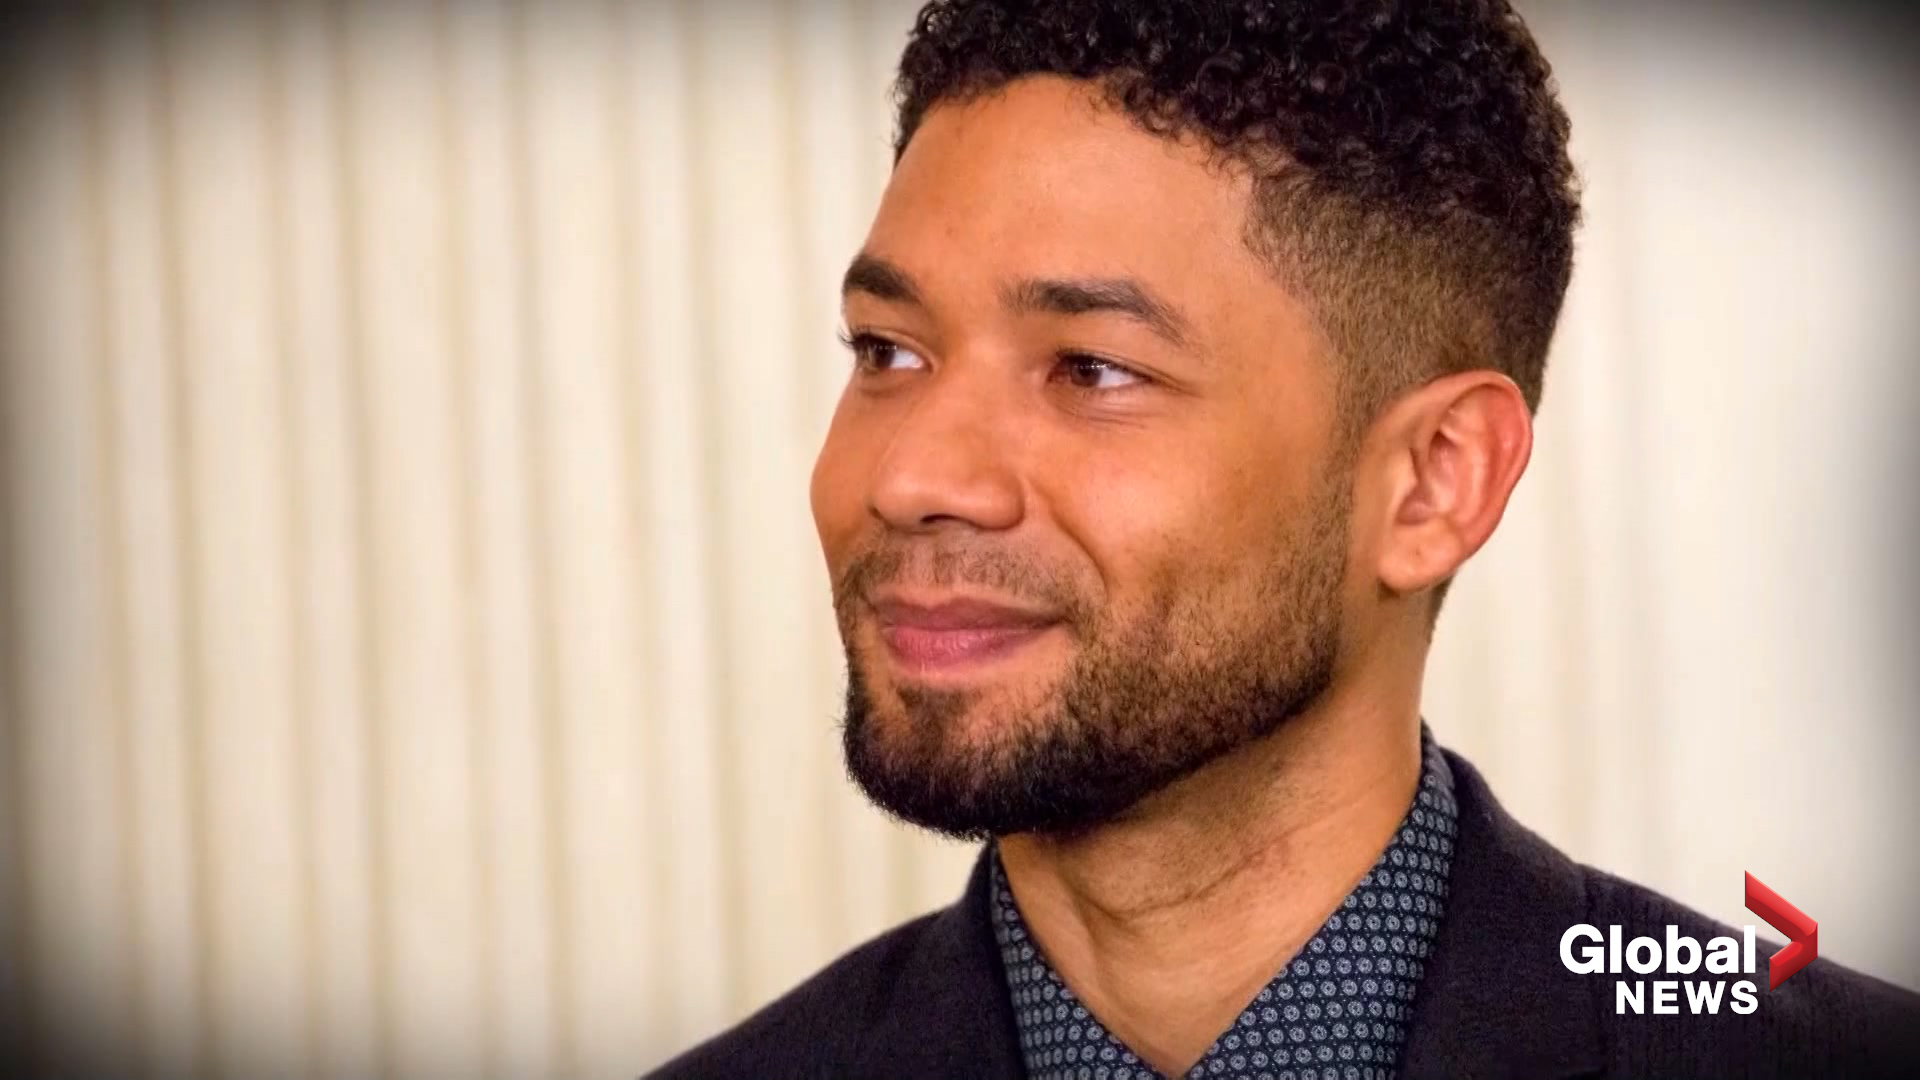 Jussie Smollett 'attack': Why it's important to wait for the facts